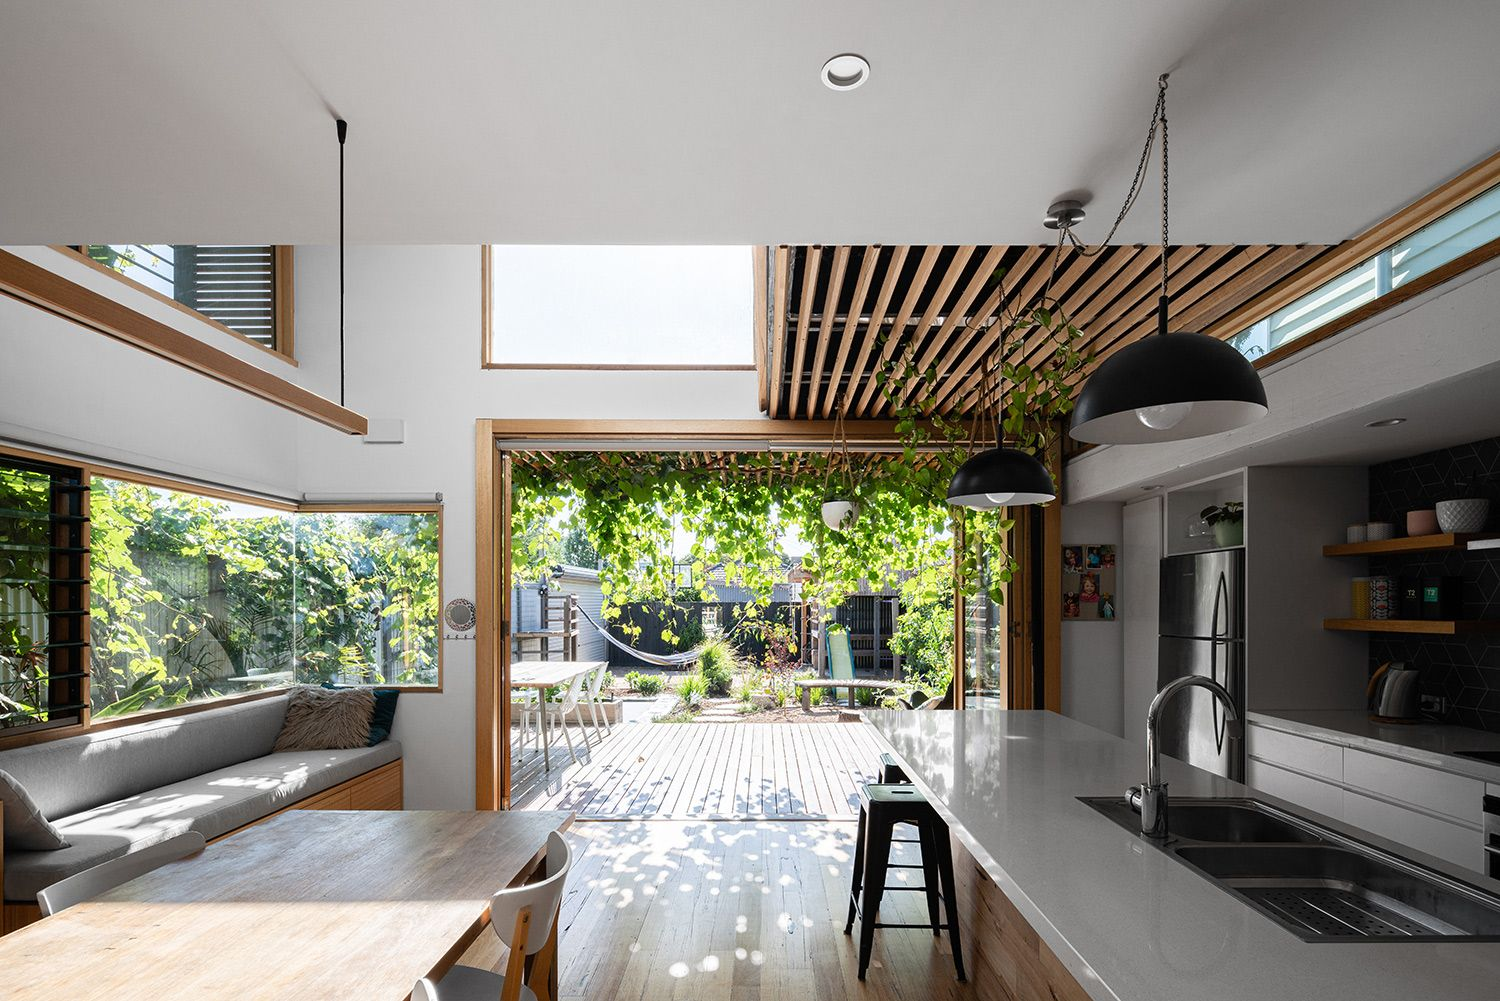 https://www.bencallery.com.au/wp-content/uploads/2015/05/42_-Callery-House-Ben-Callery-Architects-high-res-06.jpg